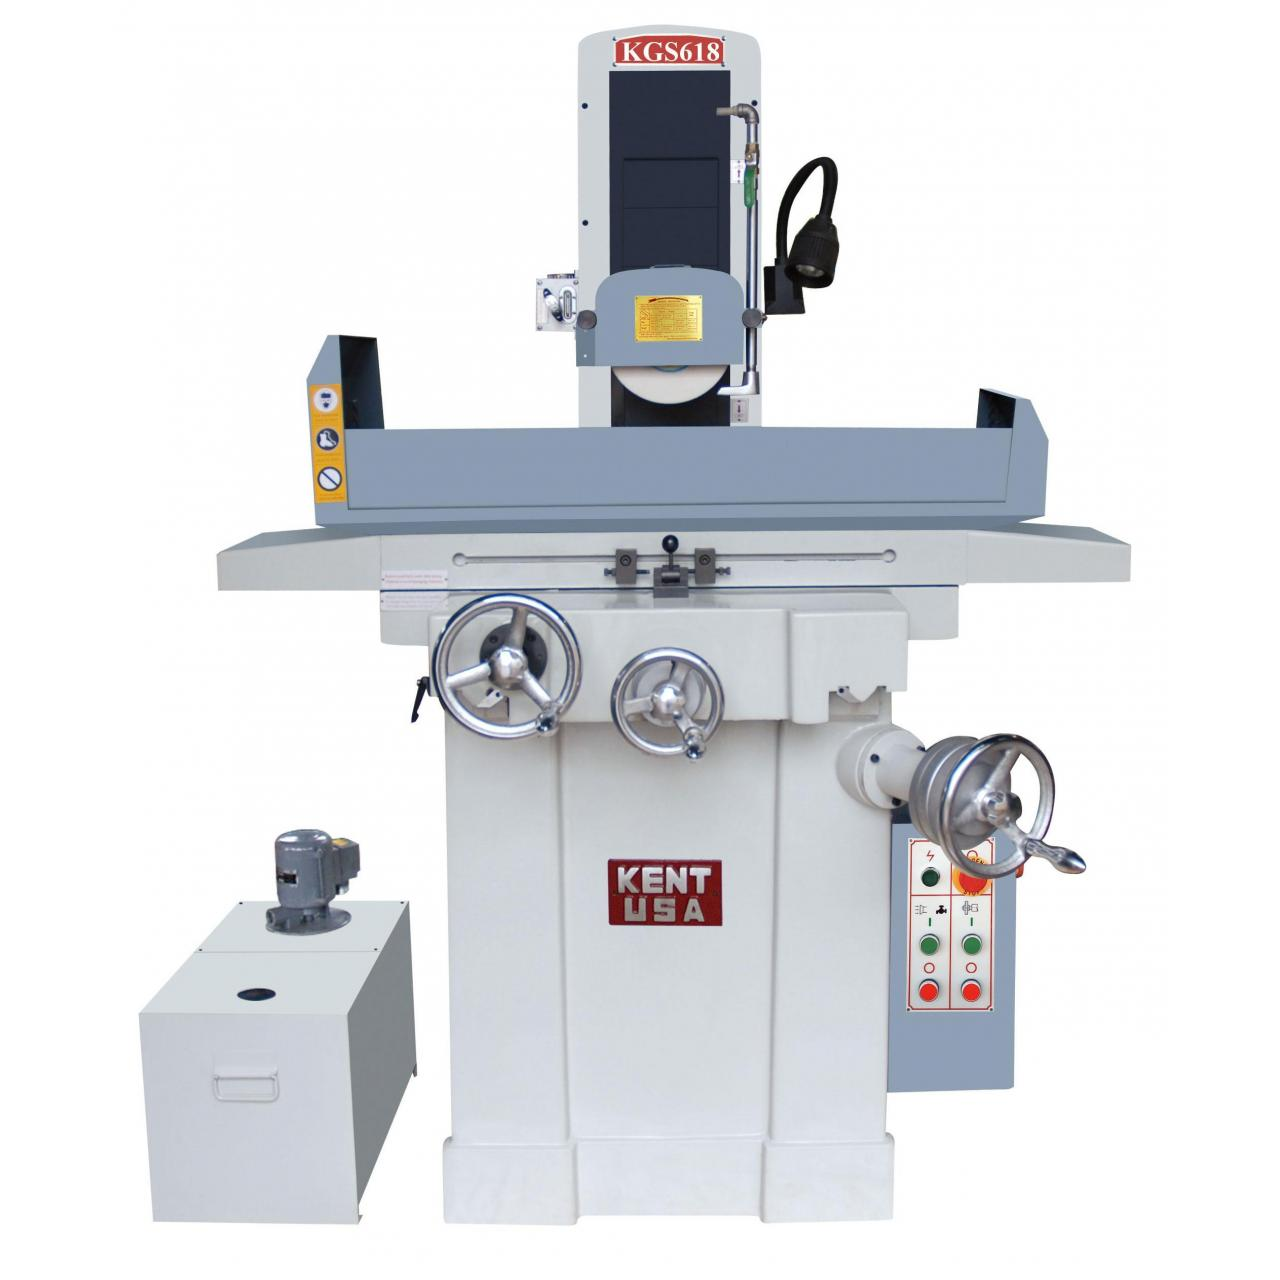 """Buy cheap Kent KGS-618 6"""" x 18"""" Manual Surface Grinder product"""